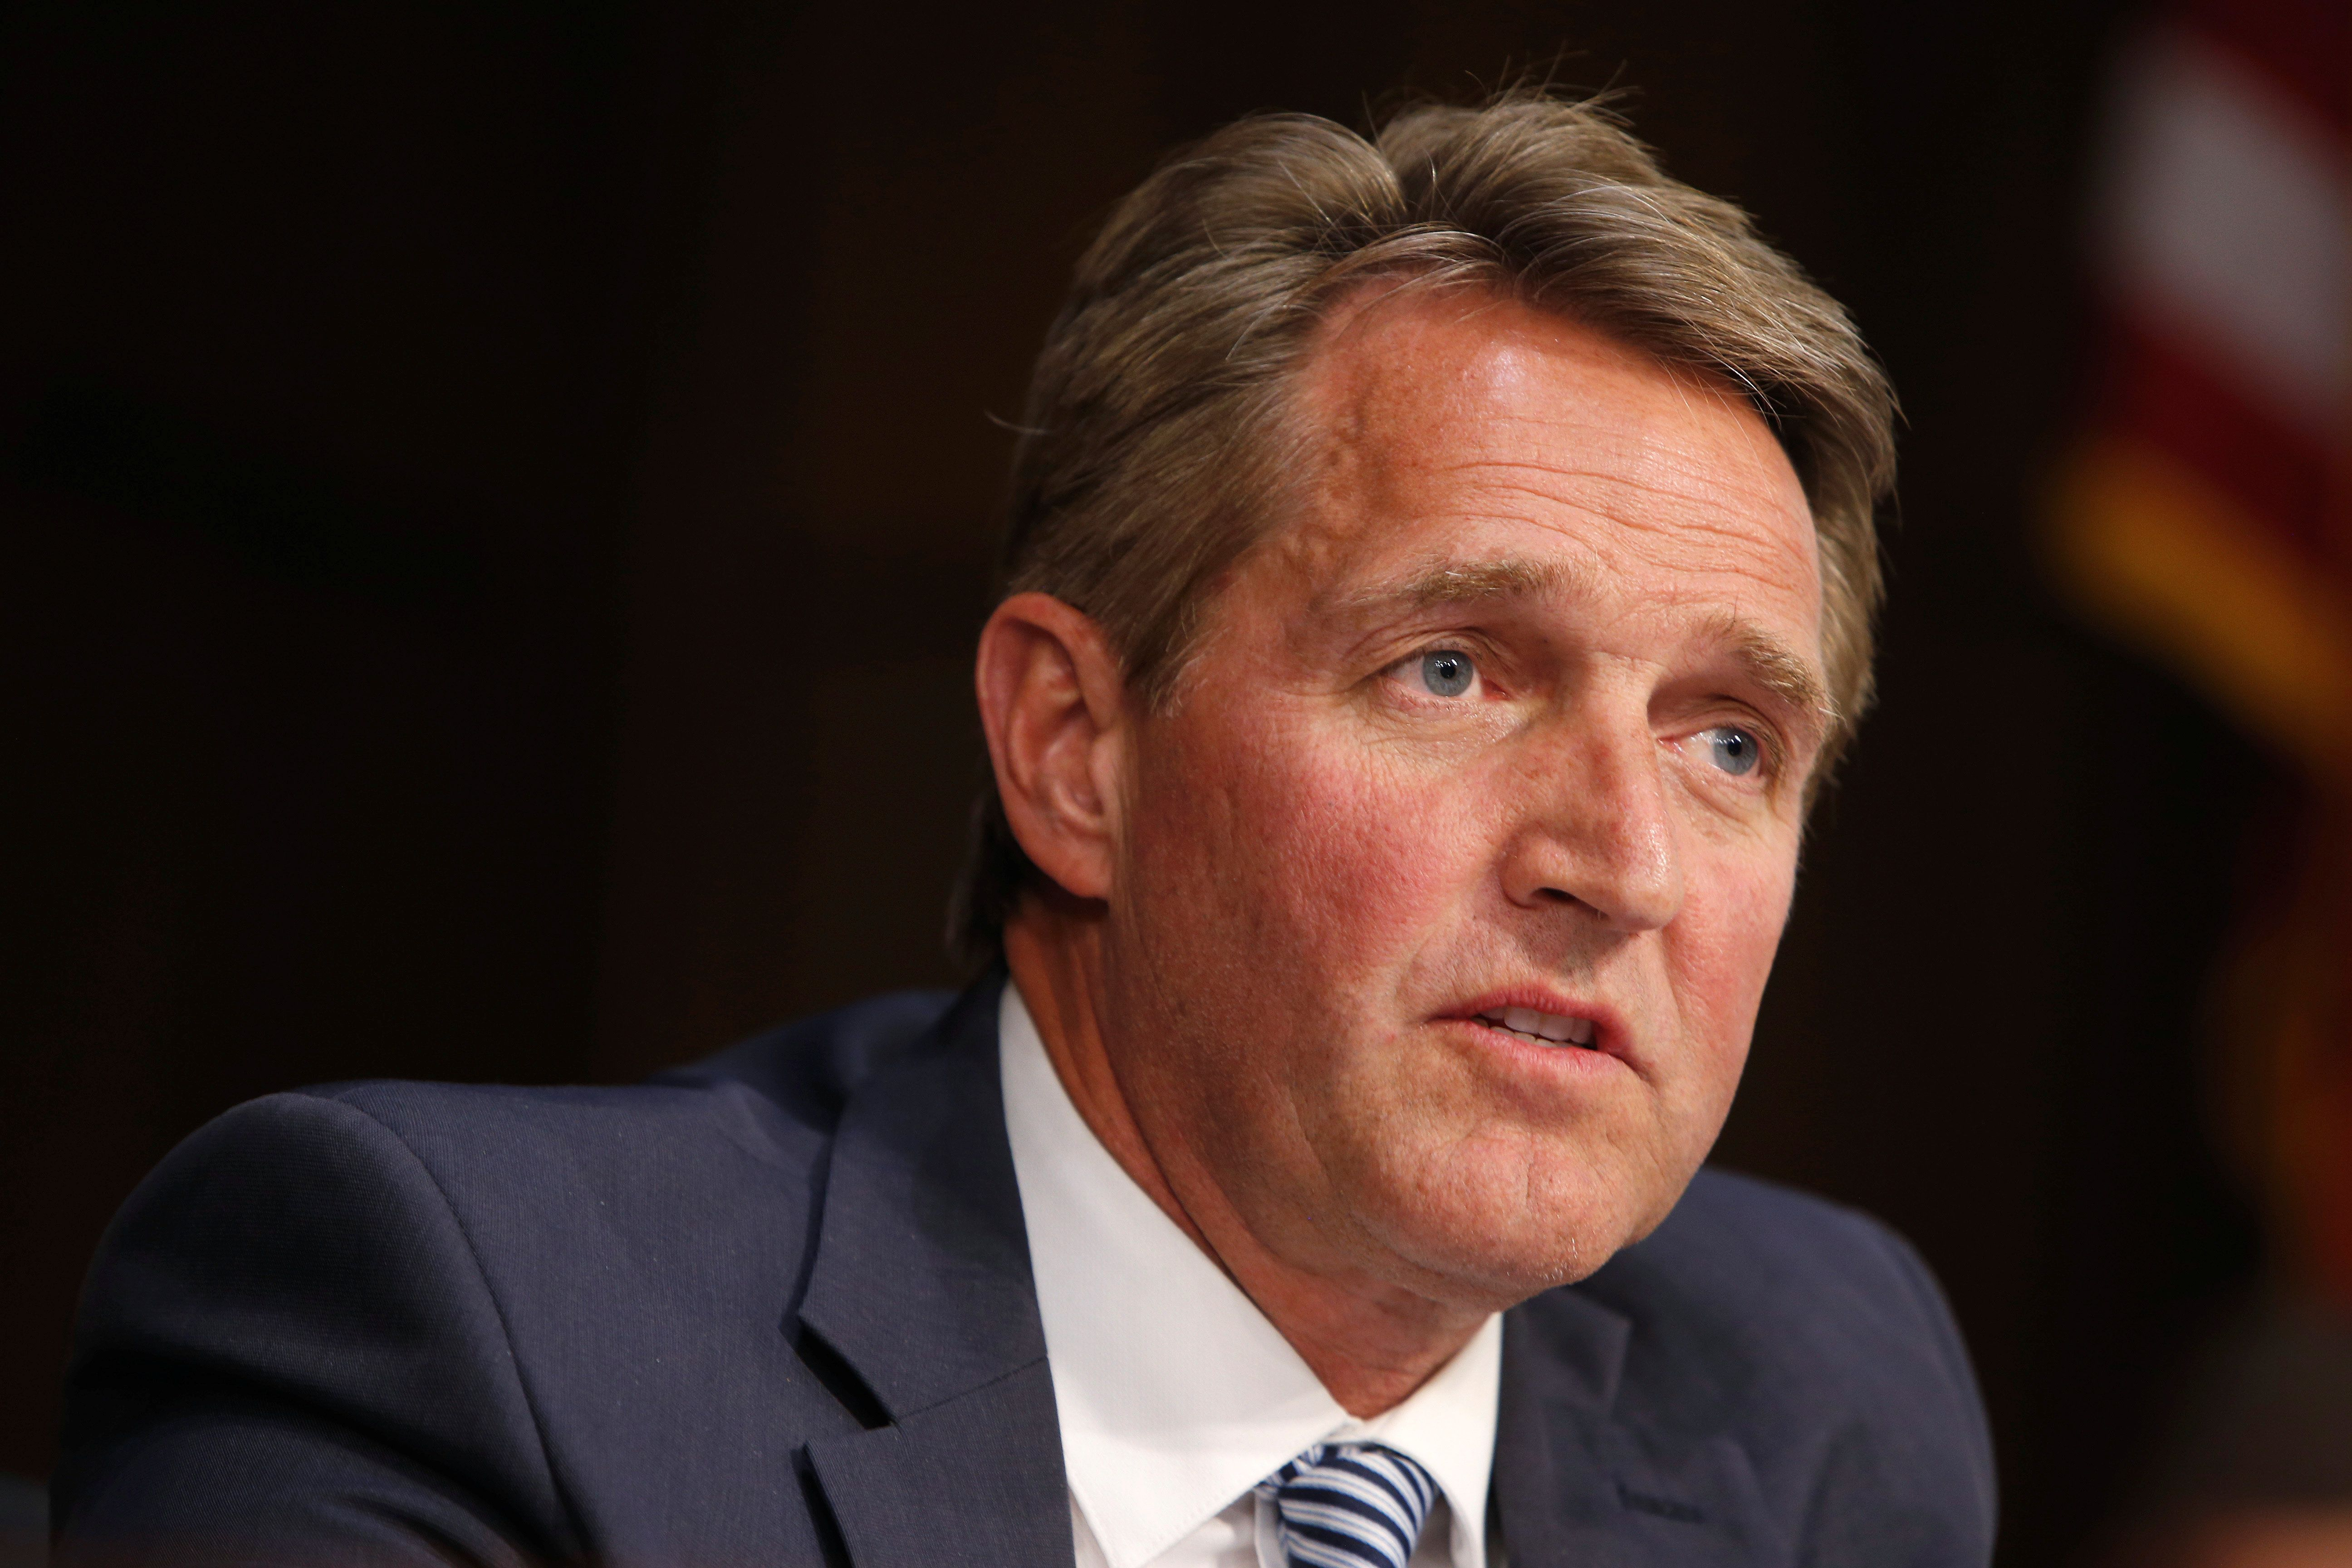 Senator Jeff Flake (R-AZ) questions Supreme Court nominee judge Neil Gorsuch during his Senate Judiciary Committee confirmation hearing on Capitol Hill in Washington, U.S., March 21, 2017.      REUTERS/Joshua Roberts